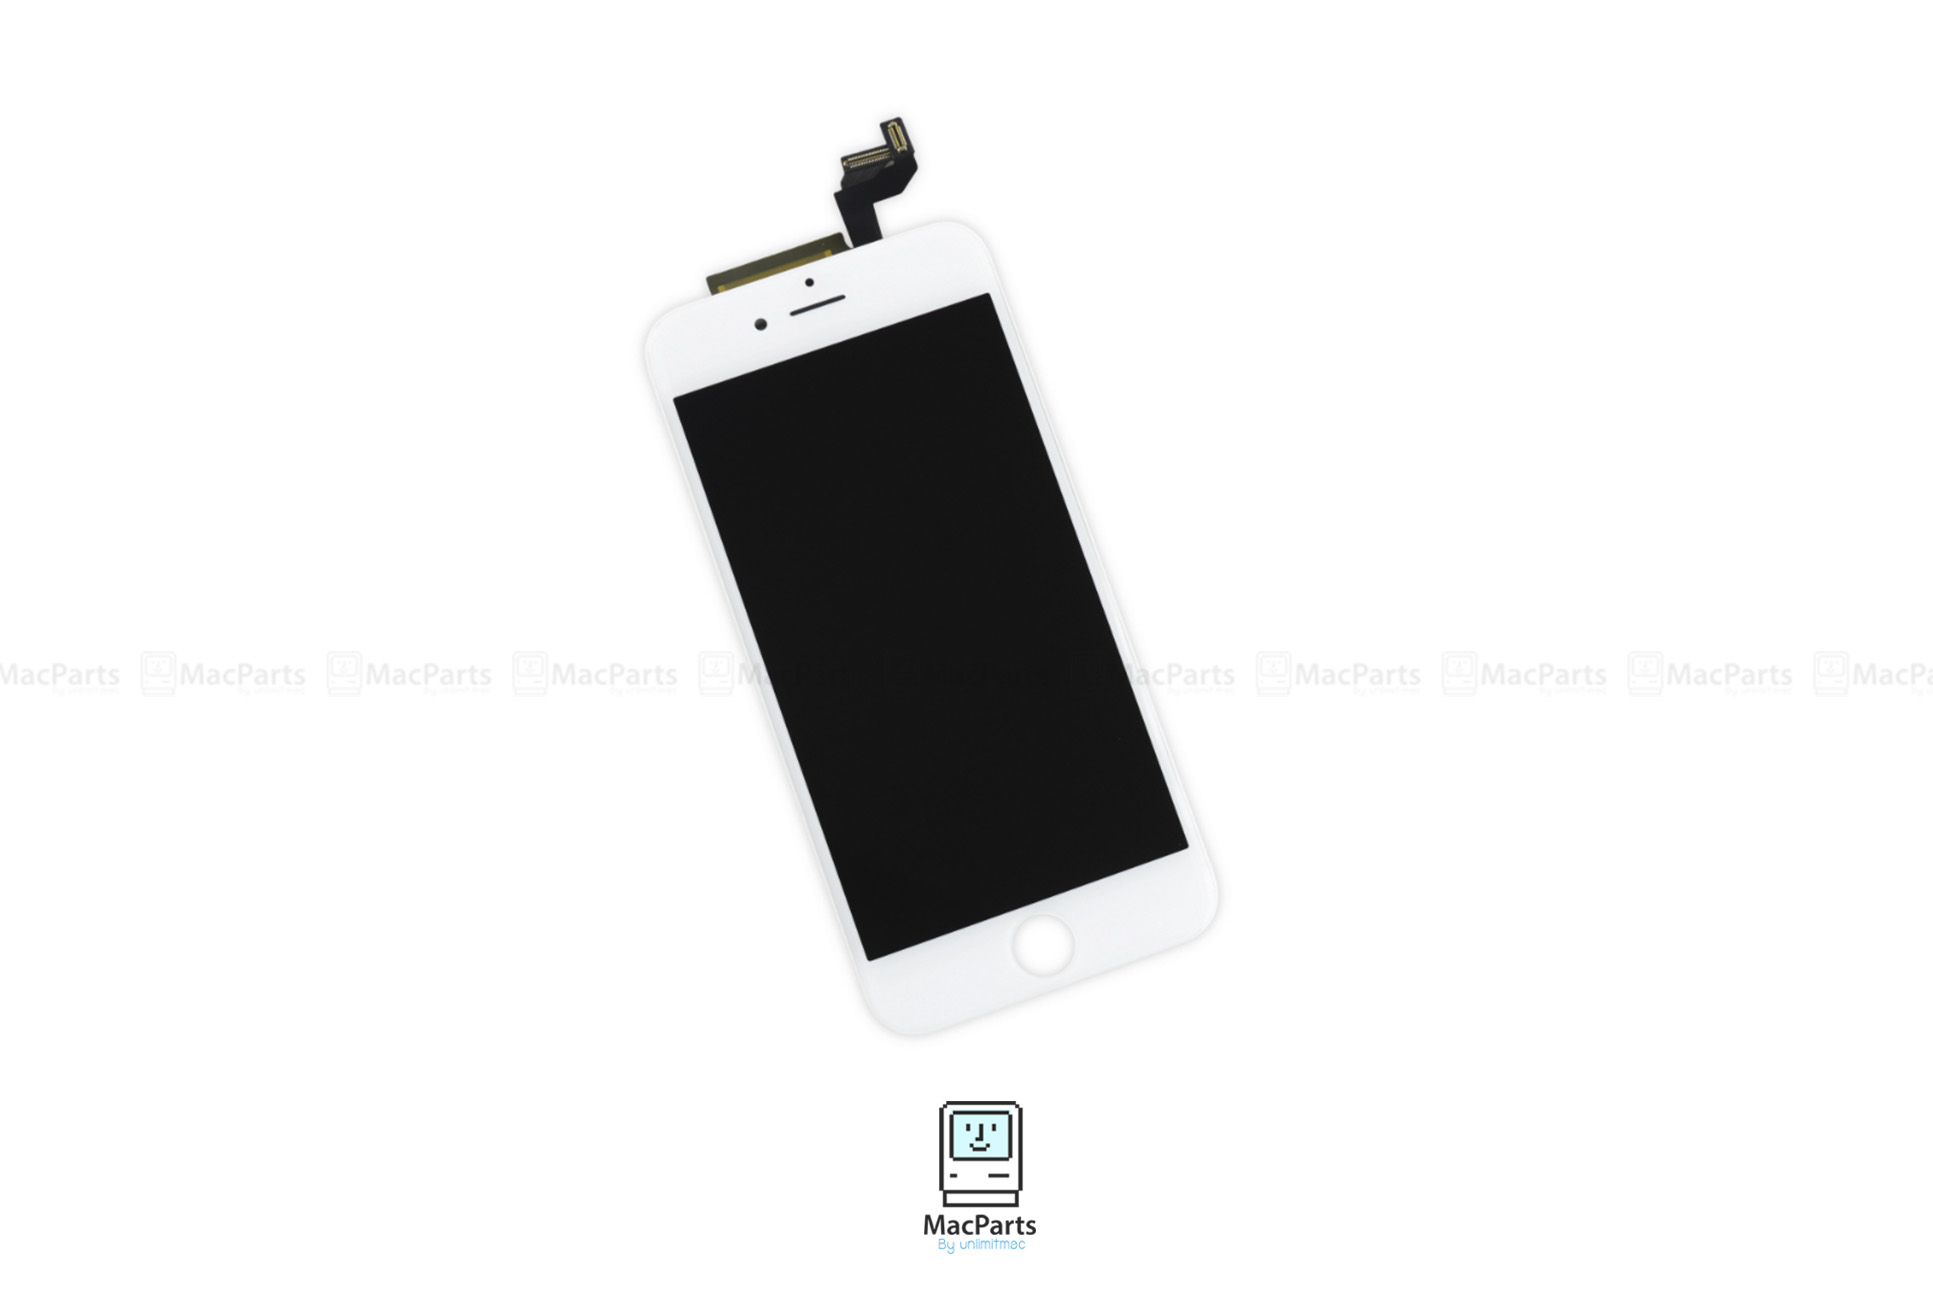 iPhone 6S Display Assembly (LCD, Front Panel/Digitizer Only) White